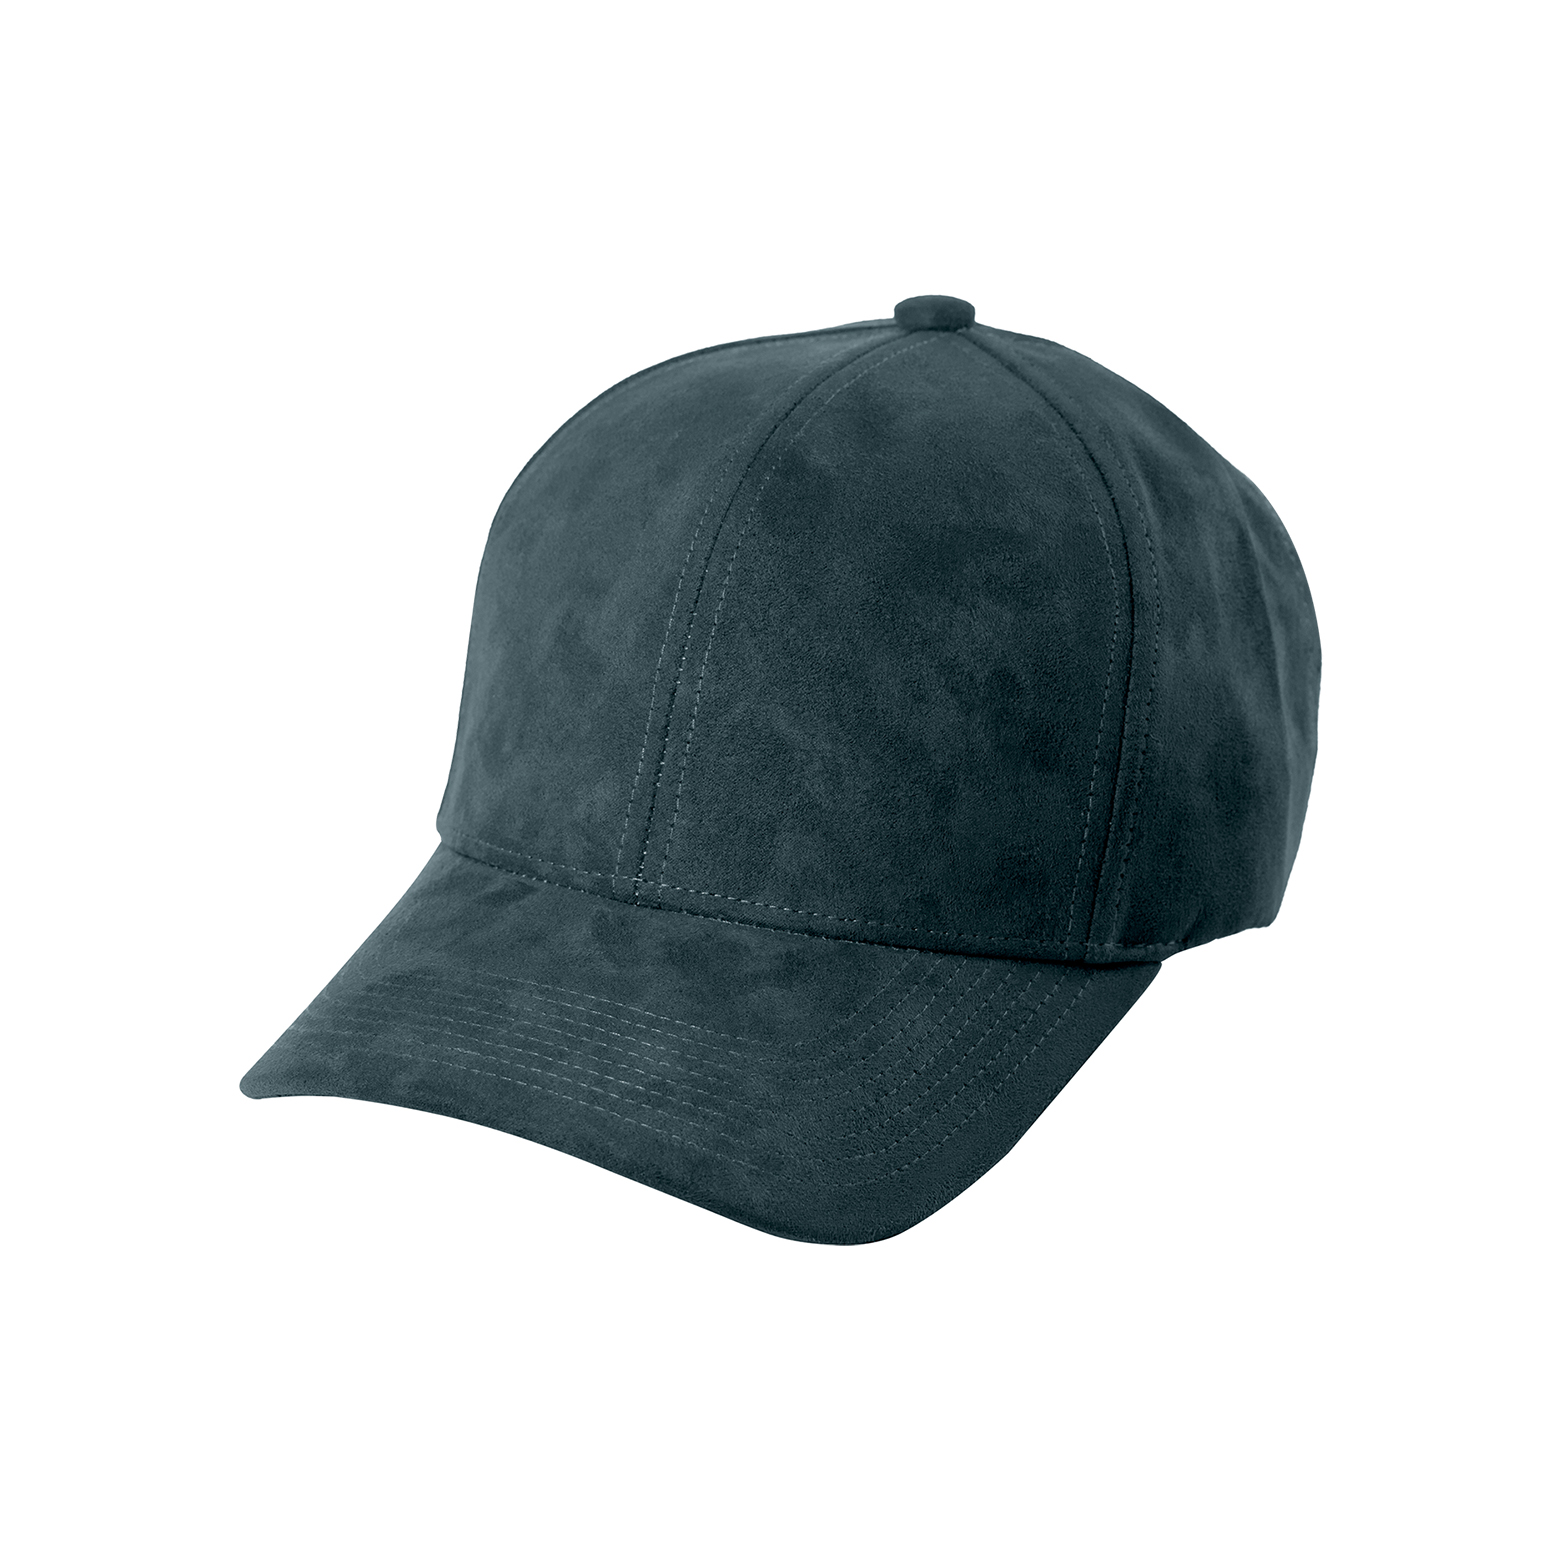 BASEBALL CAP PETROL GREEN SUEDE FRONT SIDE